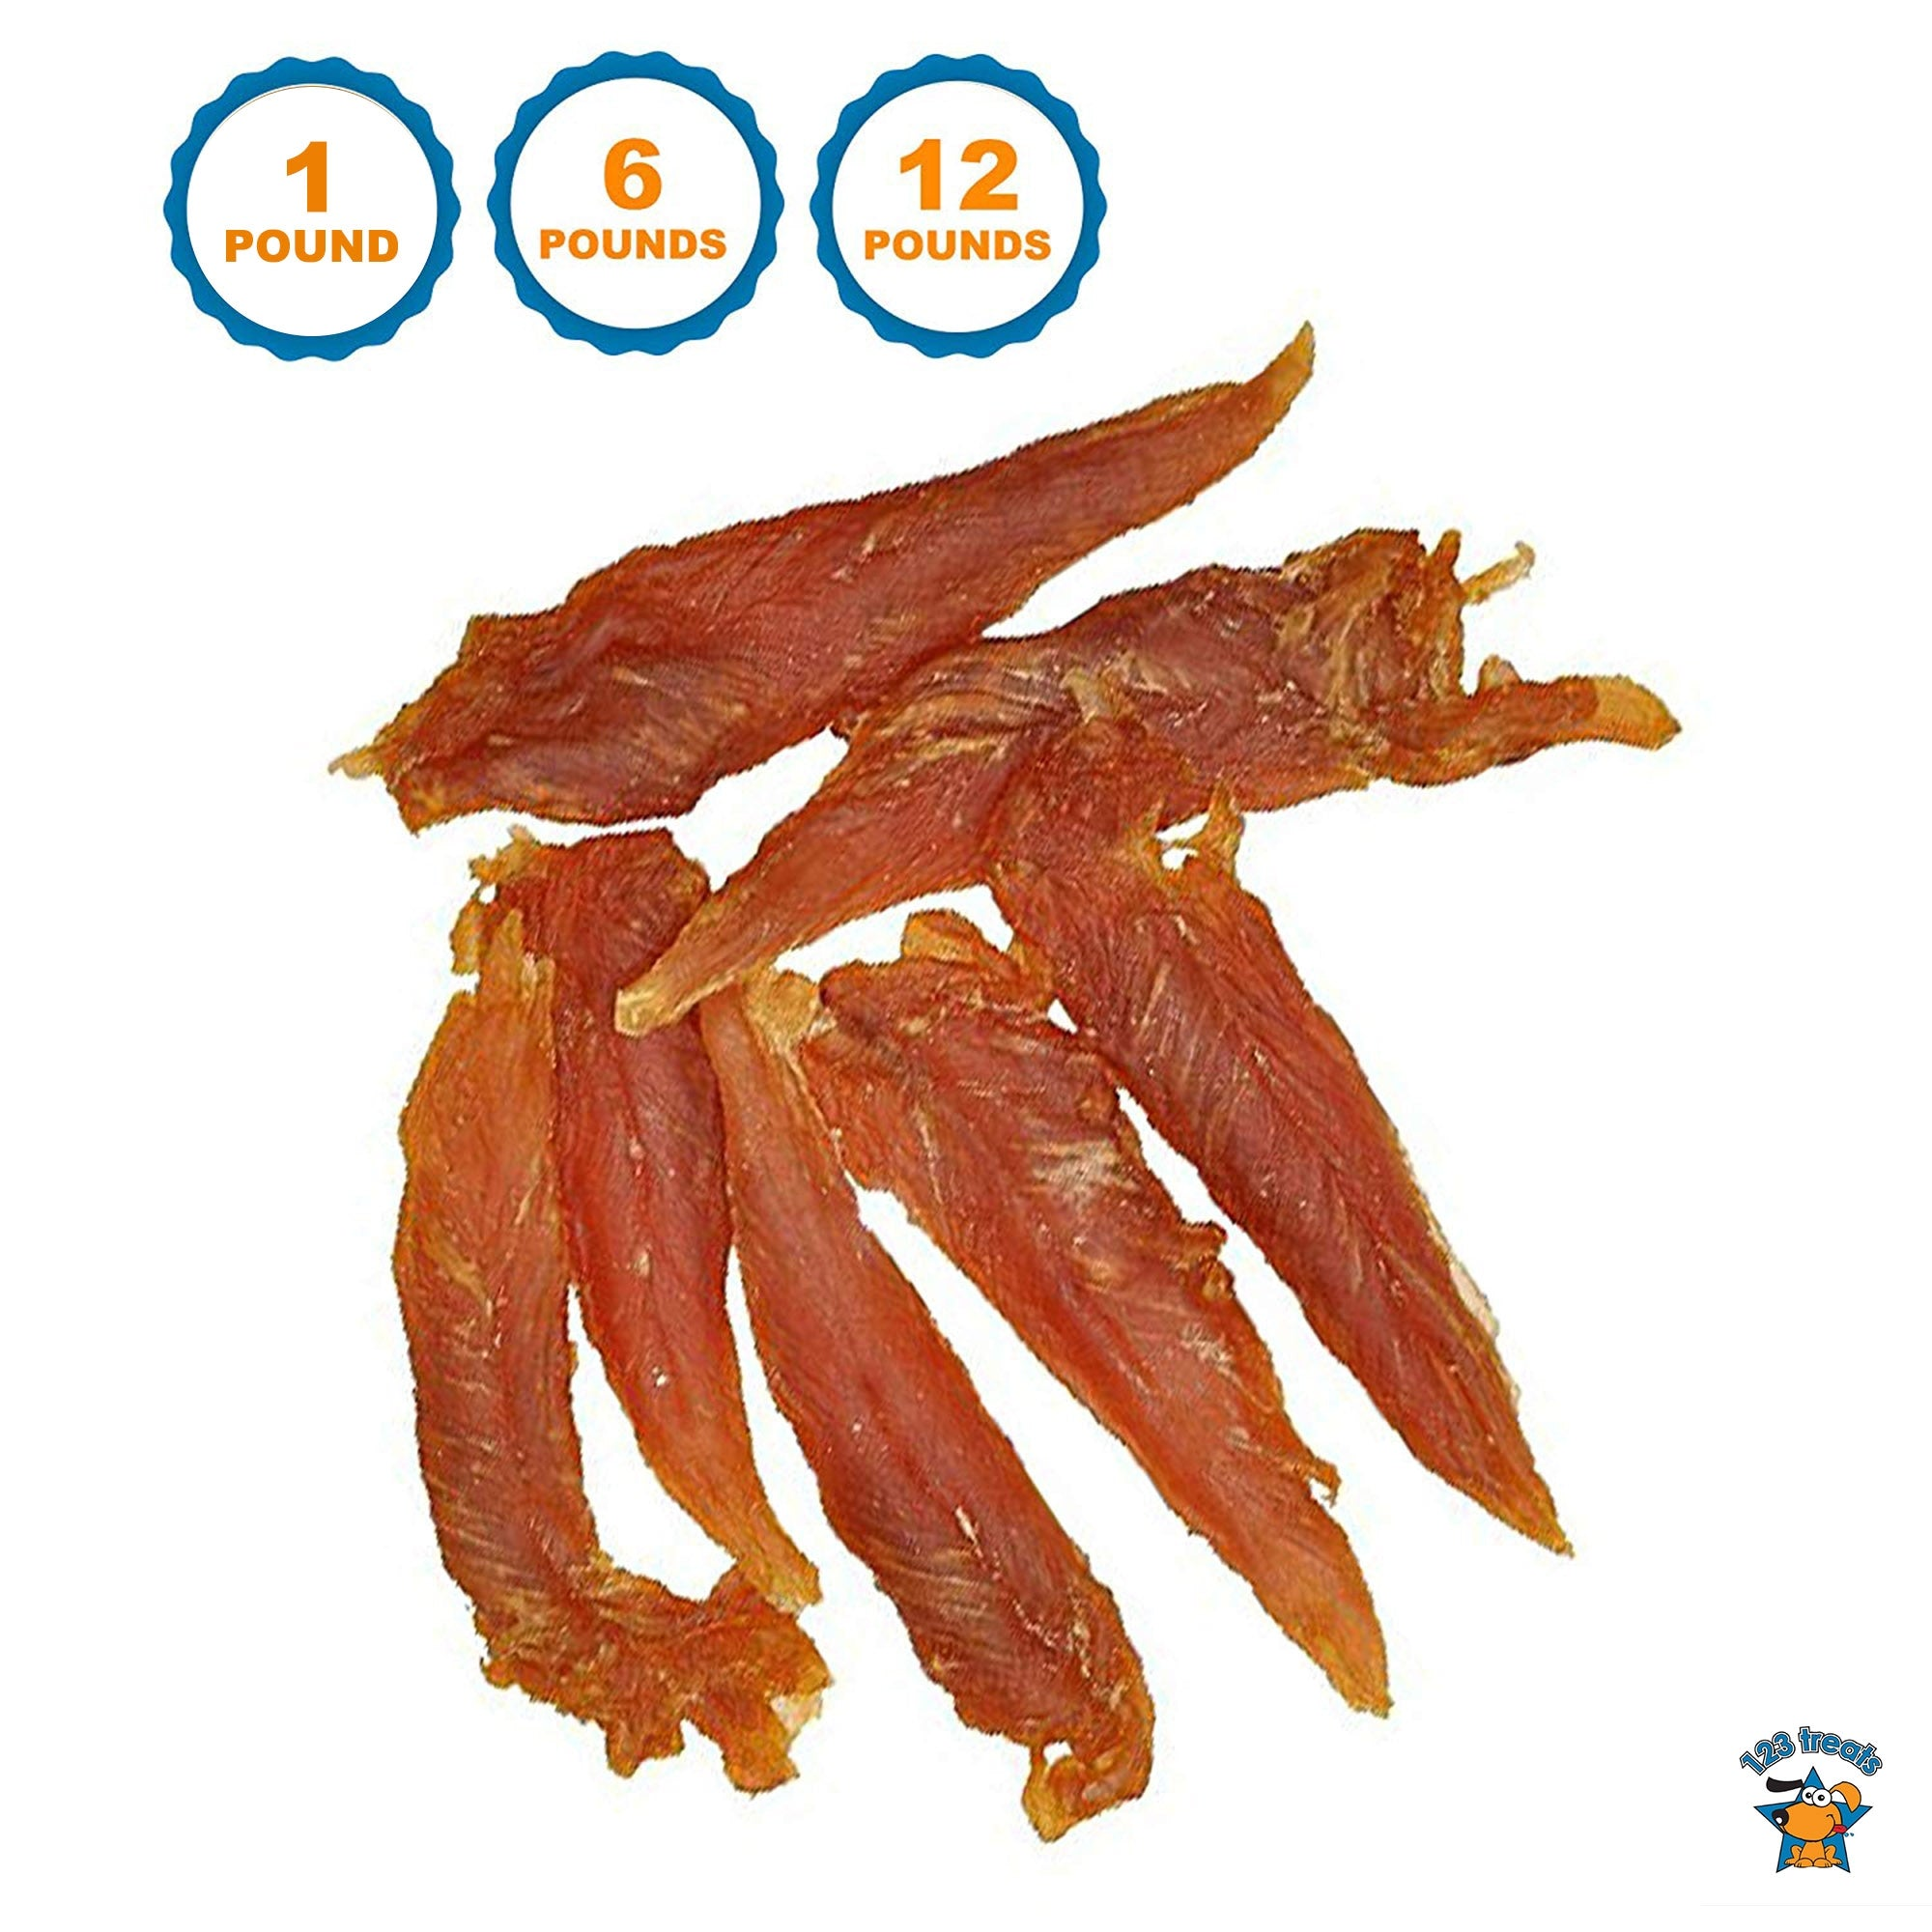 Chicken Jerky for Dogs Bulk 1, 6 or 12 Lbs | 100% Natural Chicken Dog Treats Dog Treats | Made in Brazil | 123 Treats